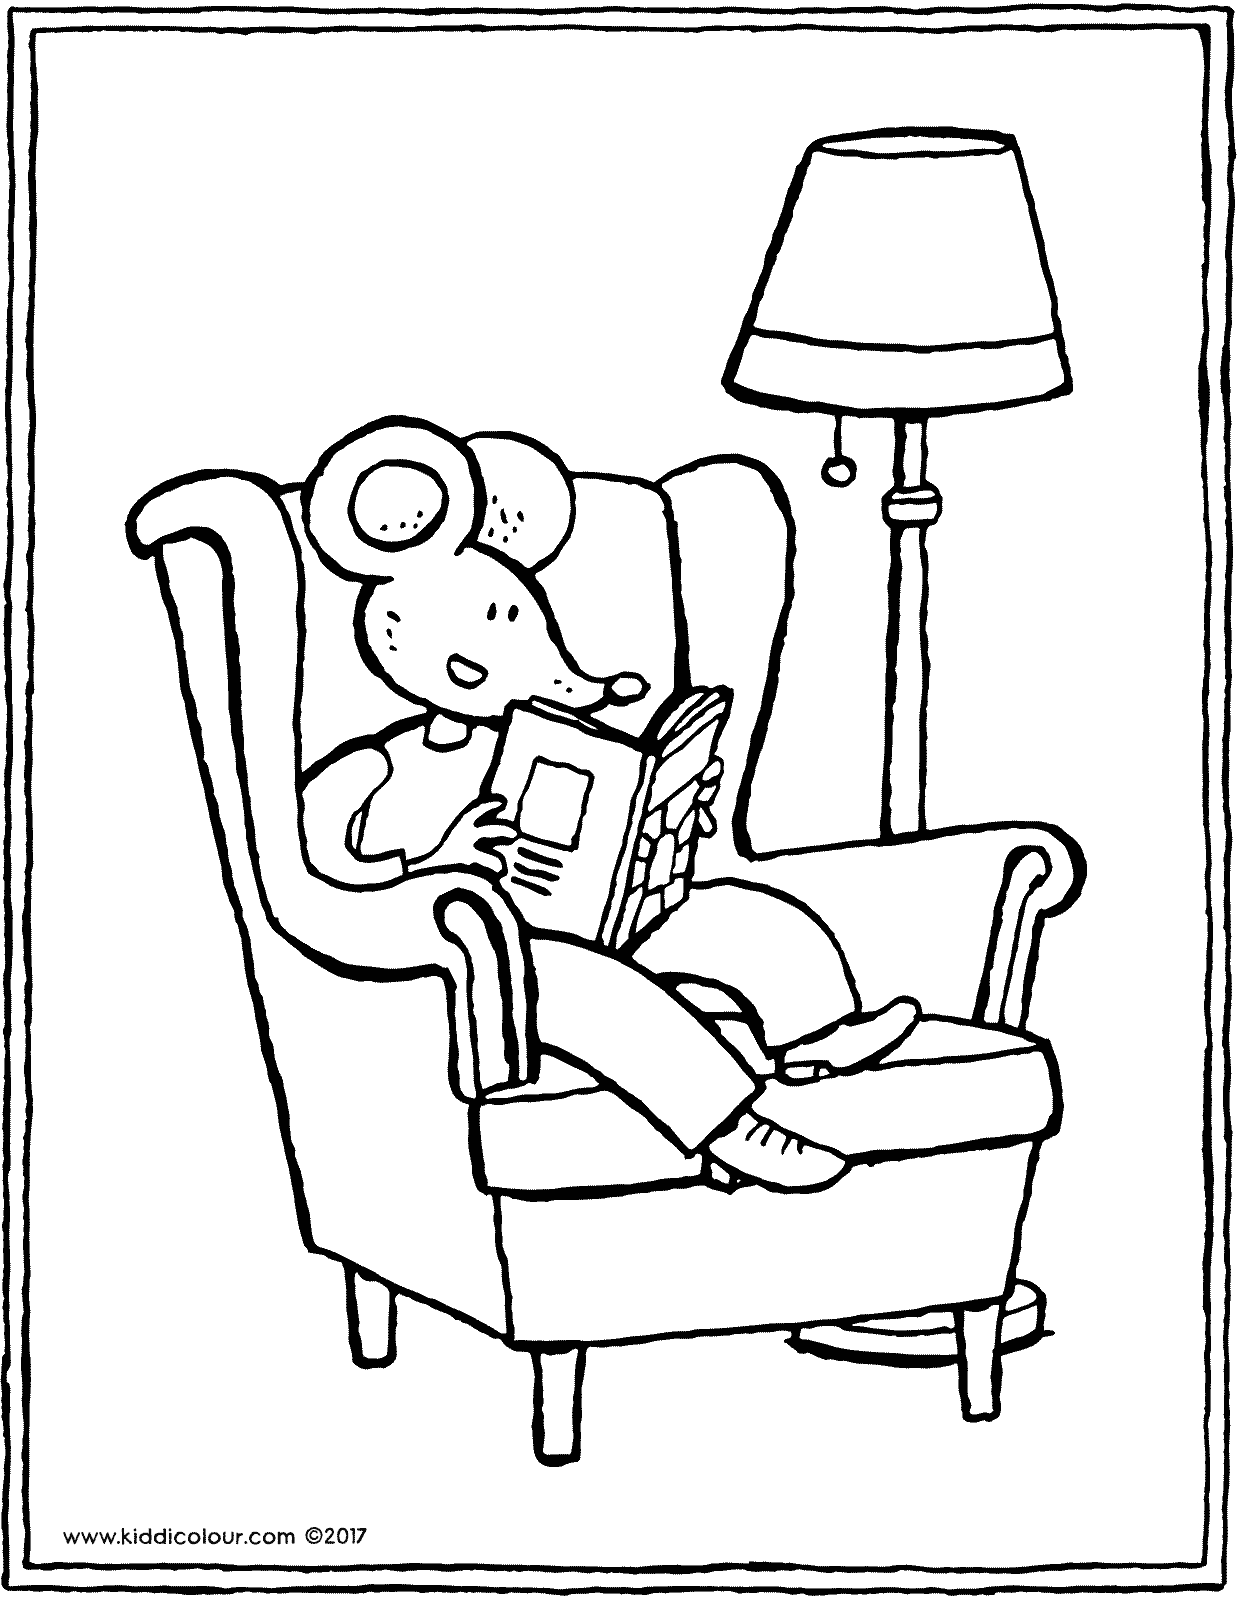 Thomas is reading a book colouring page drawing picture 01V